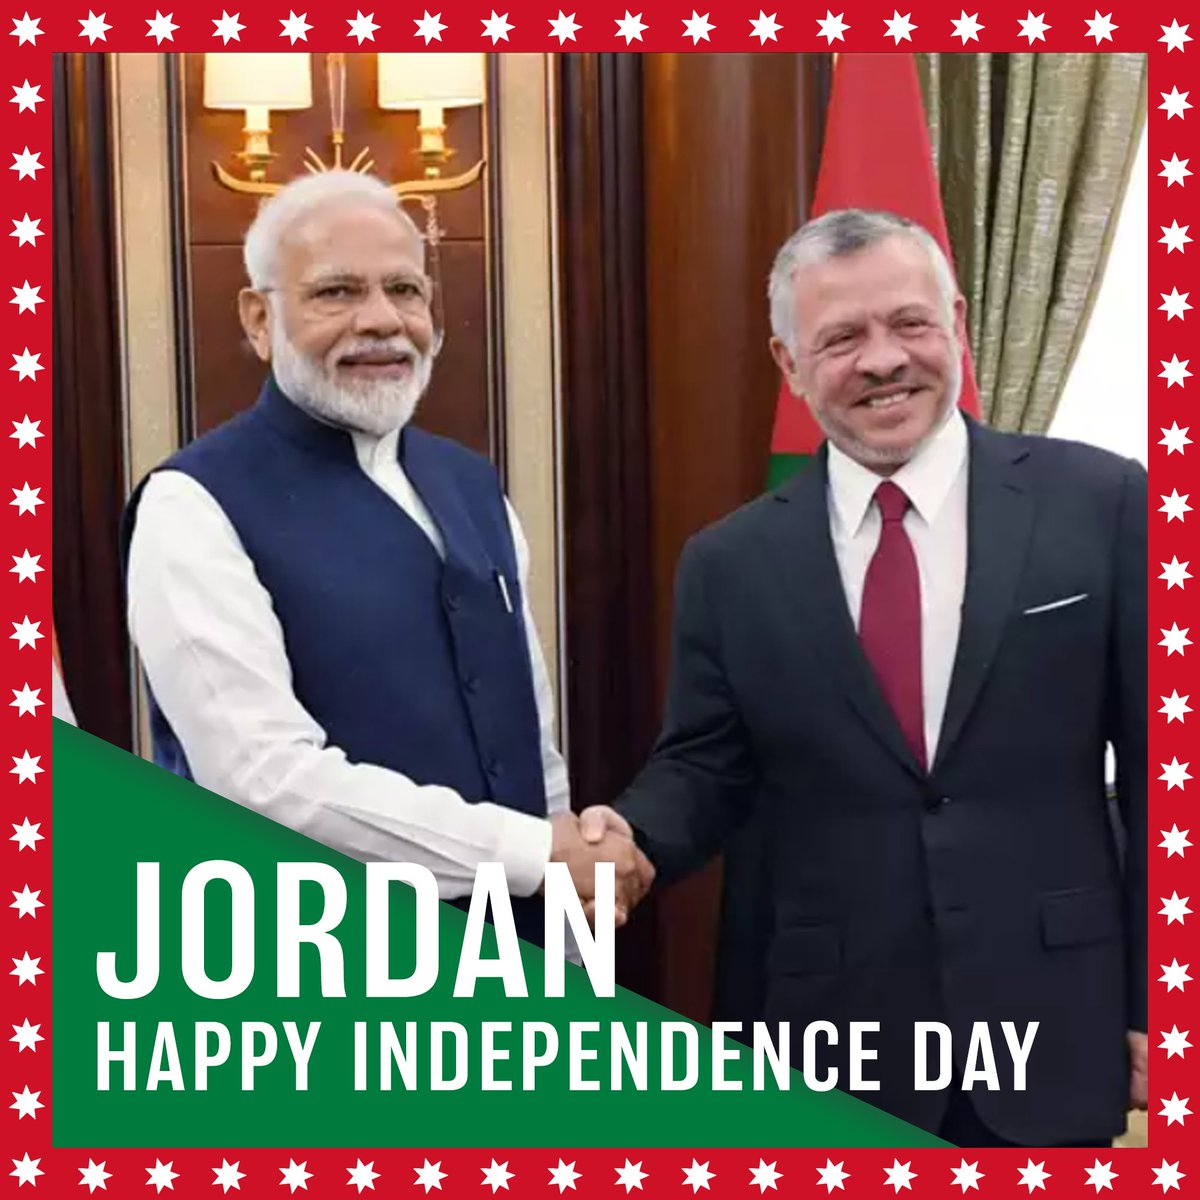 Greetings from India 🇮🇳to the people of #Jordan🇯🇴 on the occasion of their Independence Day. @IndiainJordan